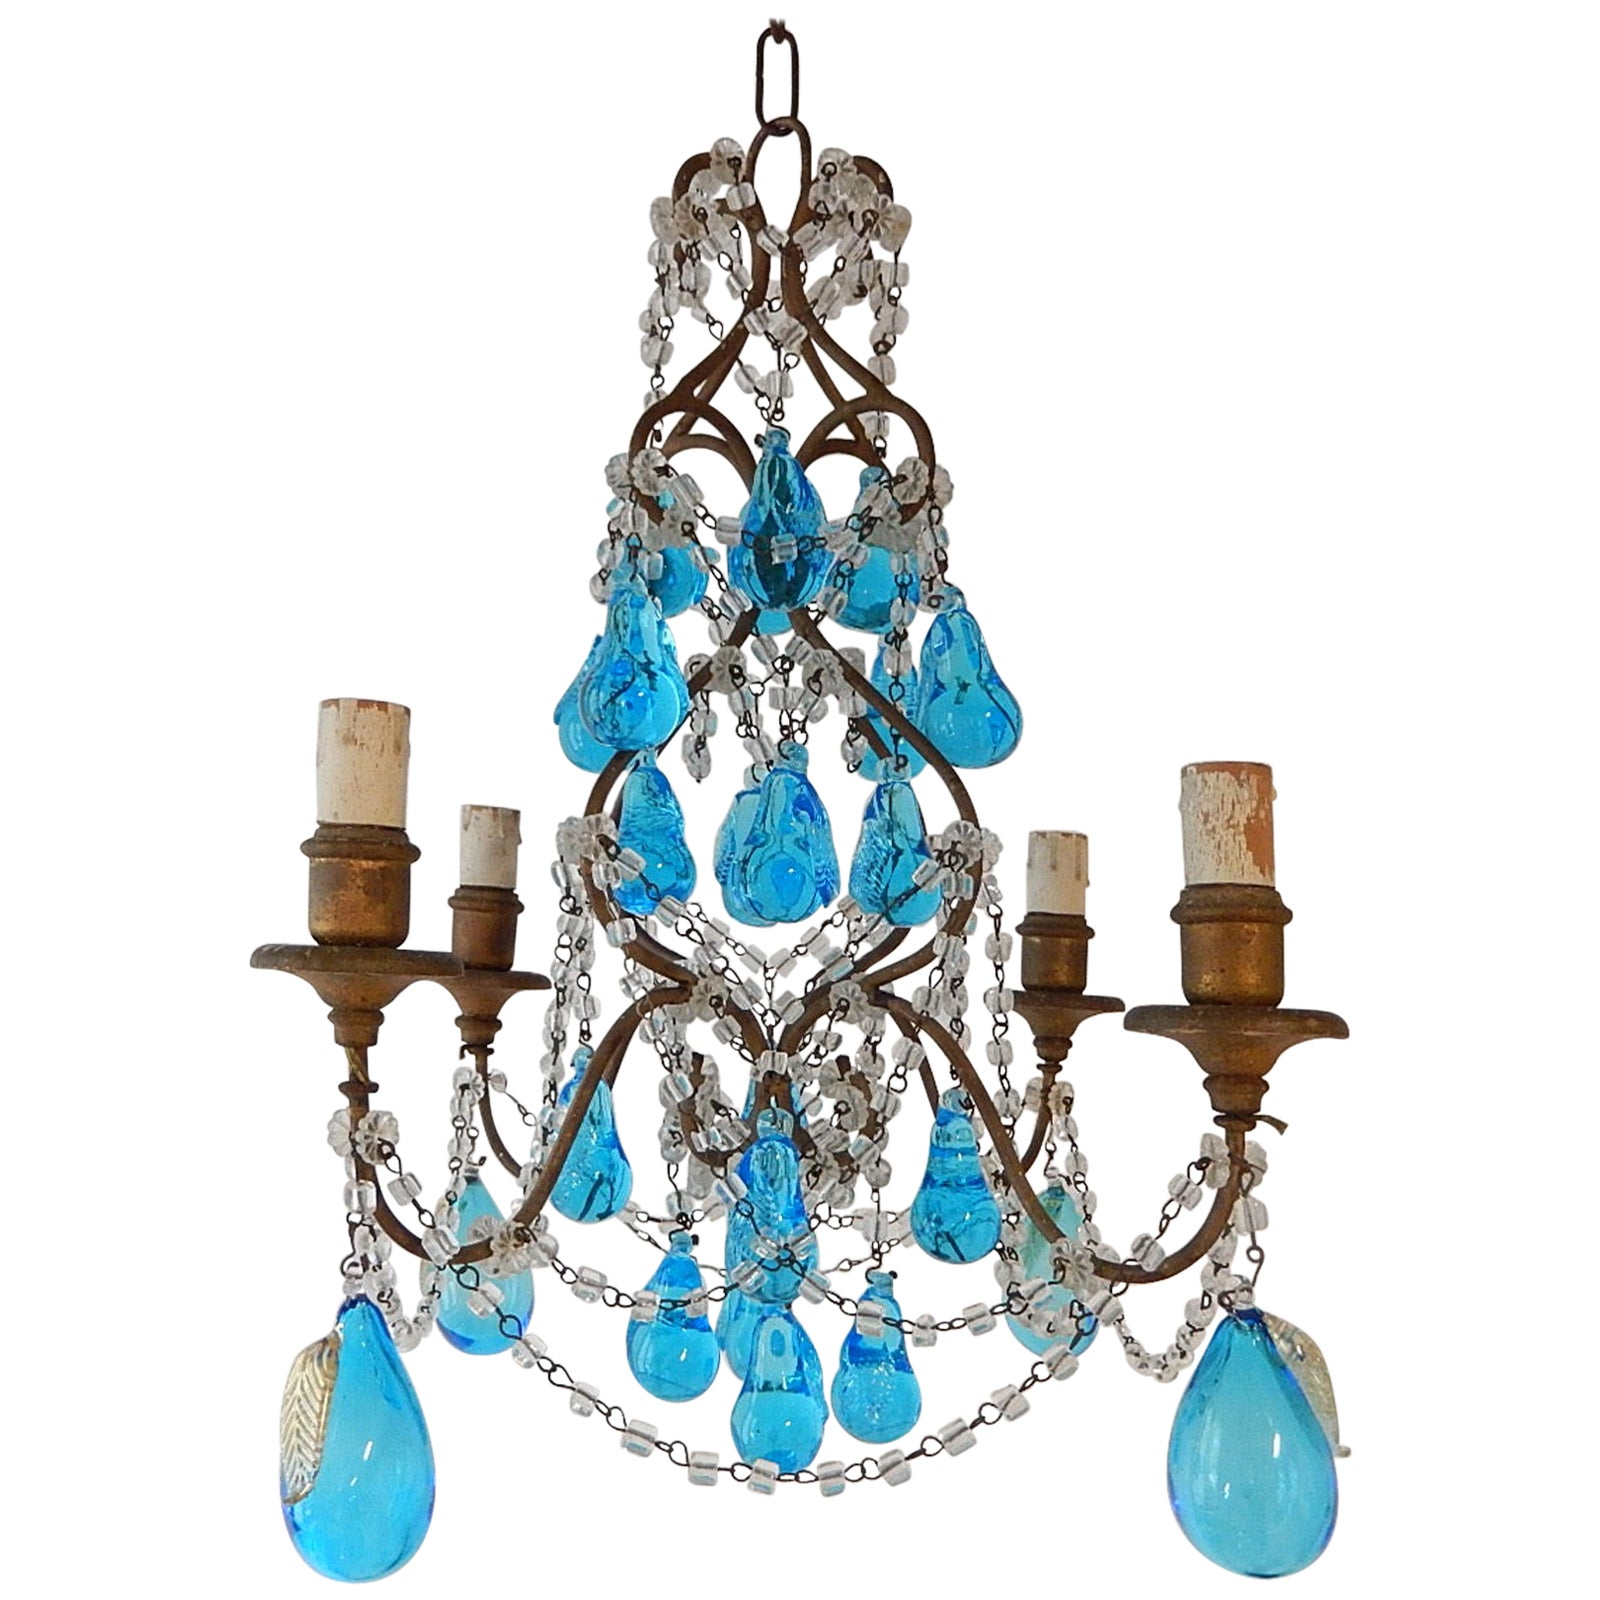 Italian Blue Aqua Murano Huge Blown Pears Crystal Chandelier, circa 1920